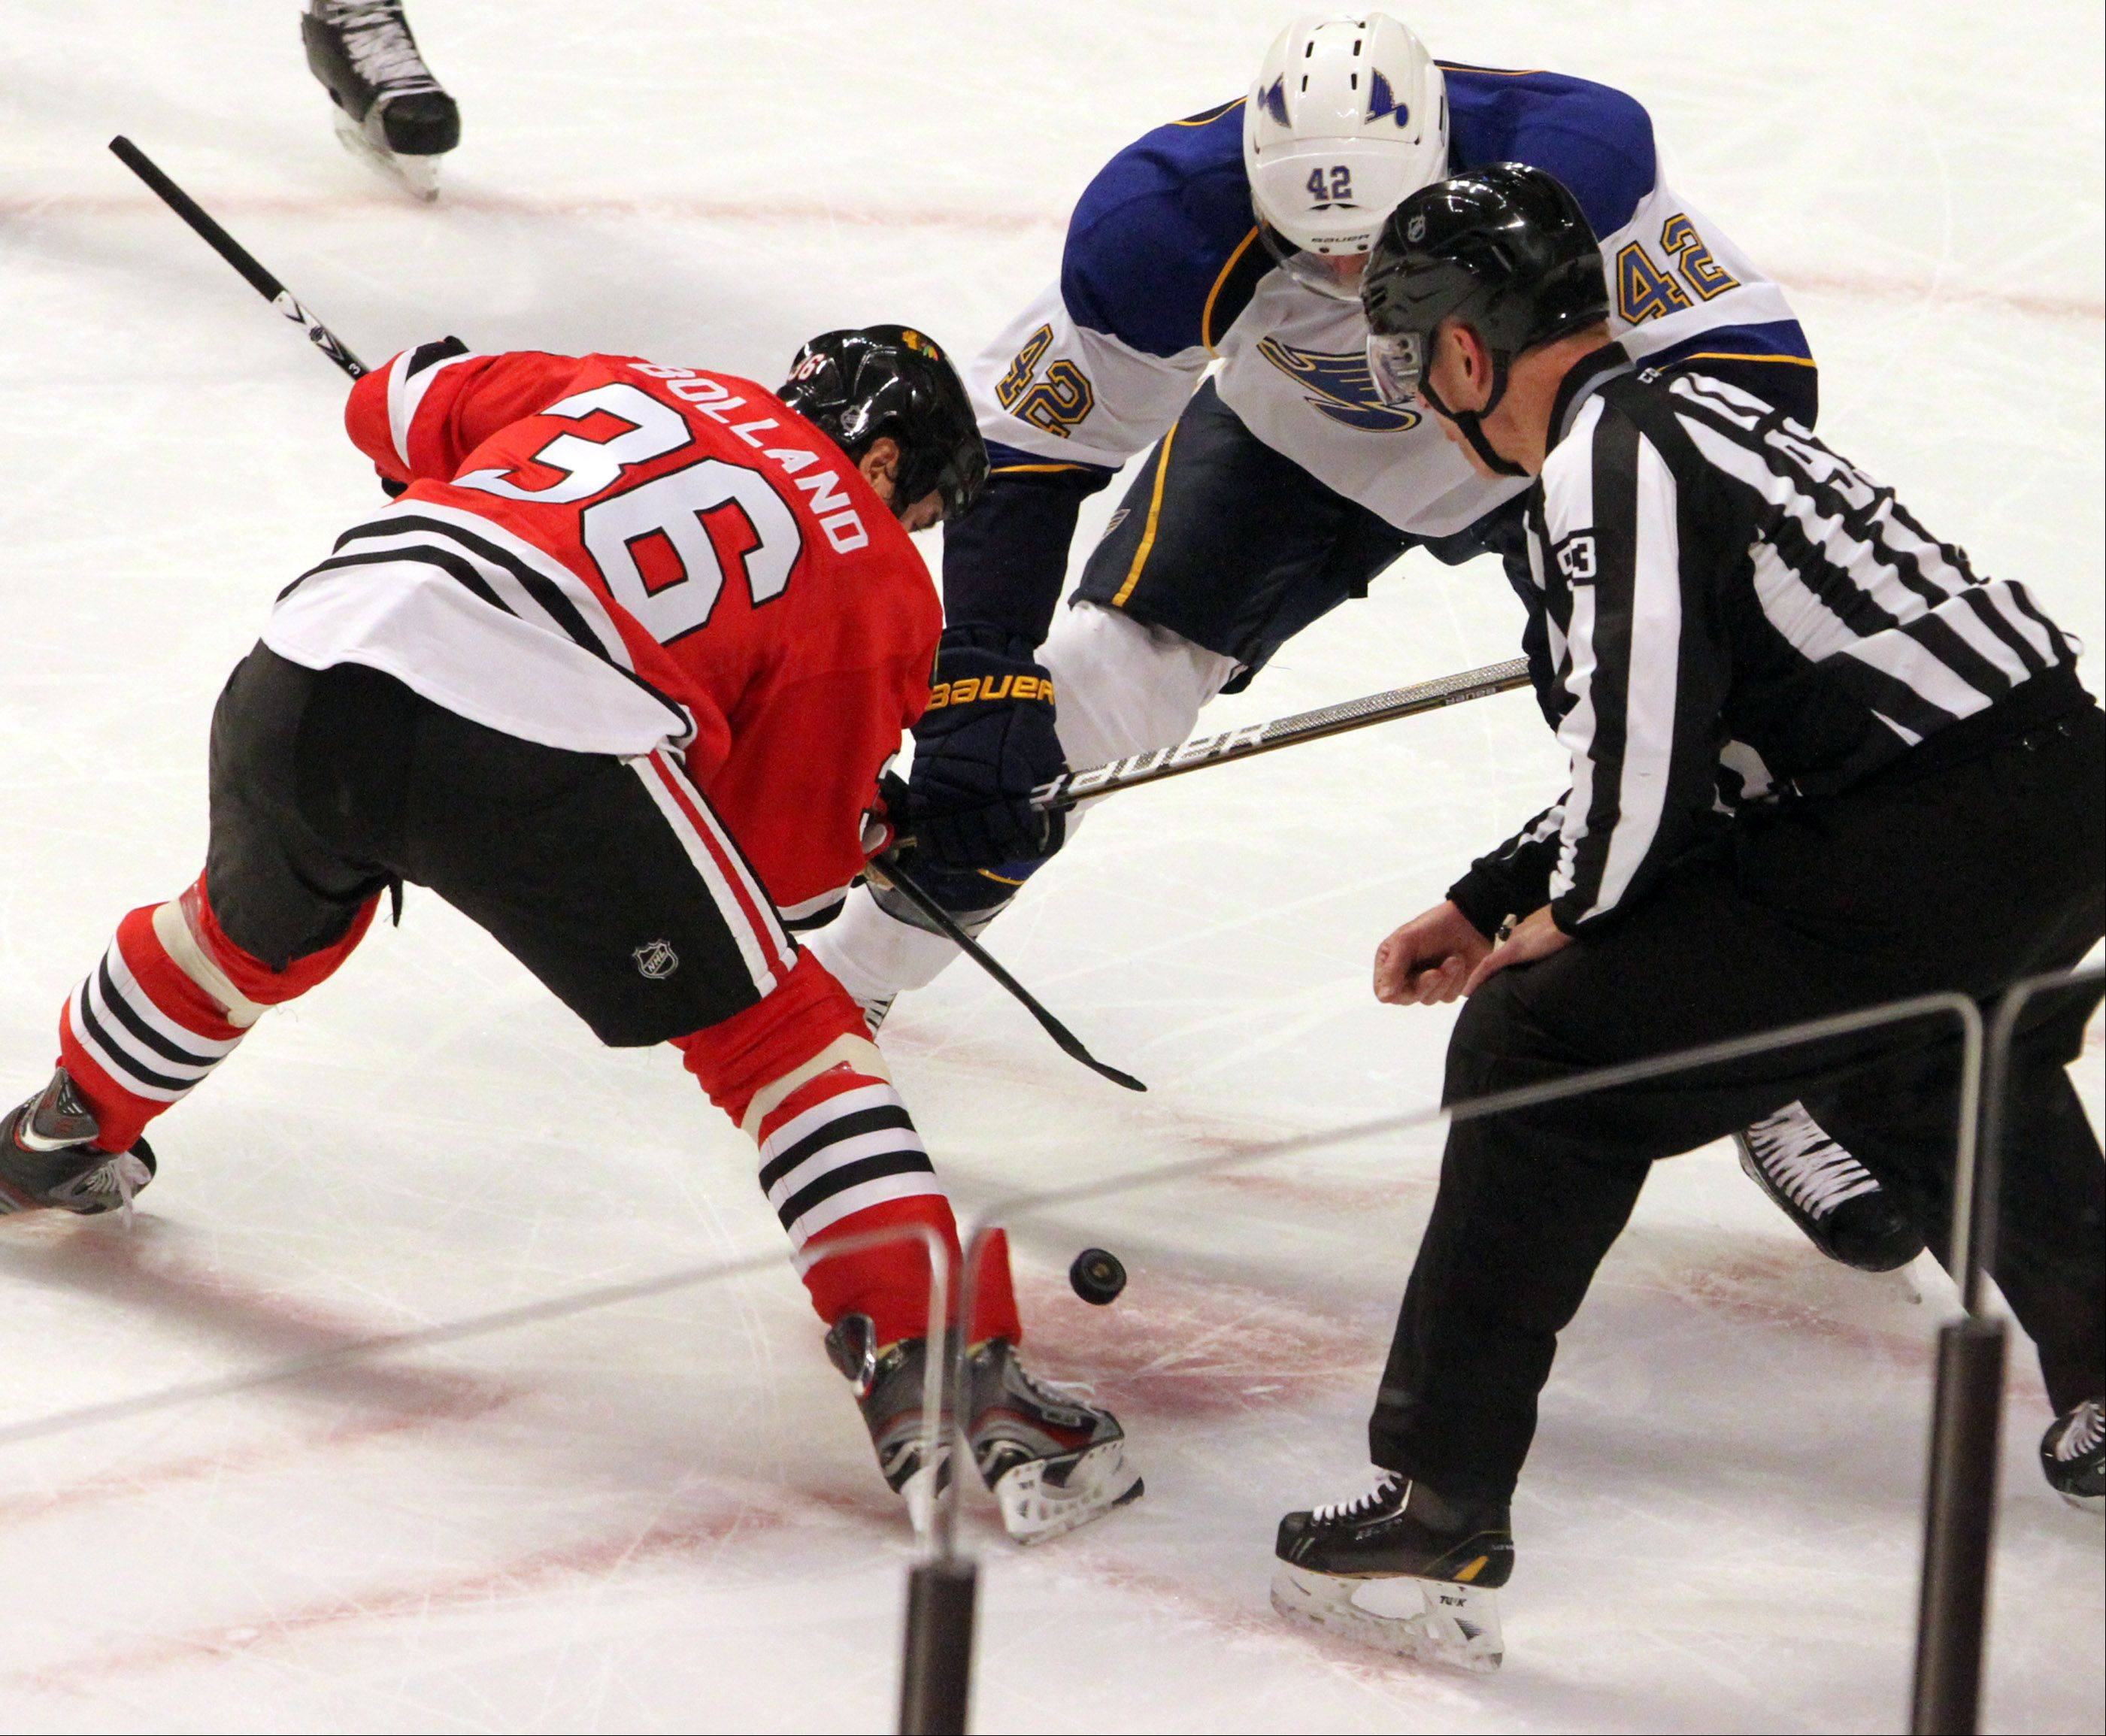 Chicago Blackhawks center Dave Bolland and St. Louis Blues center David Backes face off during the first period.